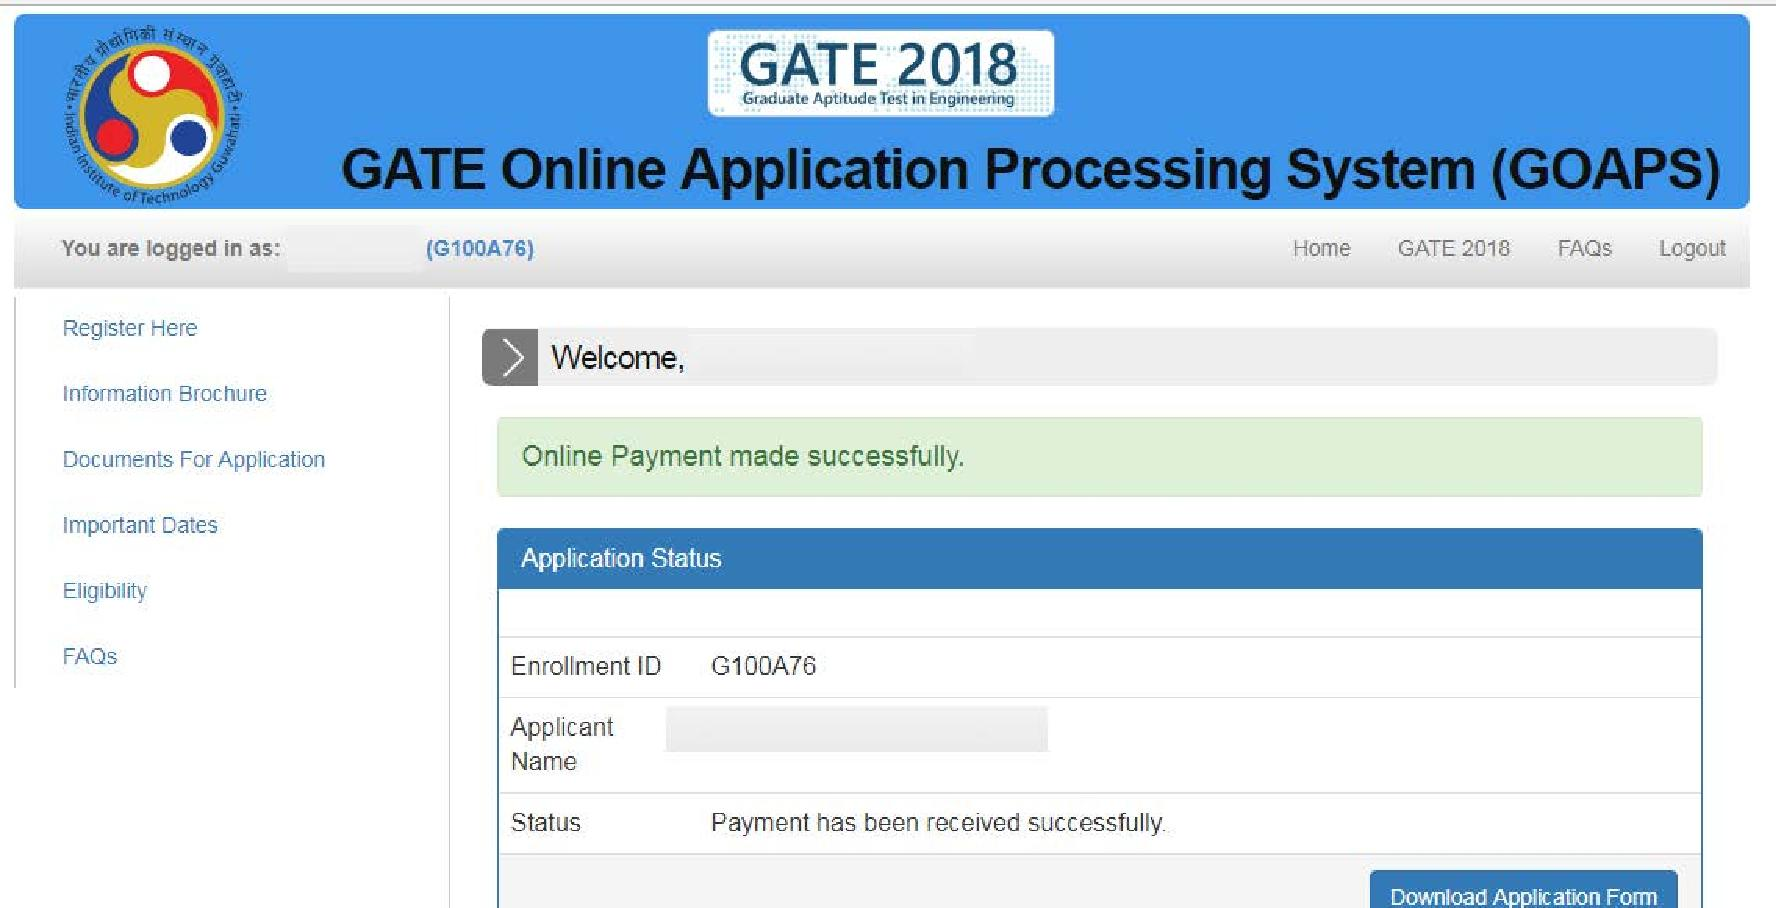 GATE 2018 Application Form Filling Step by Step Instructions